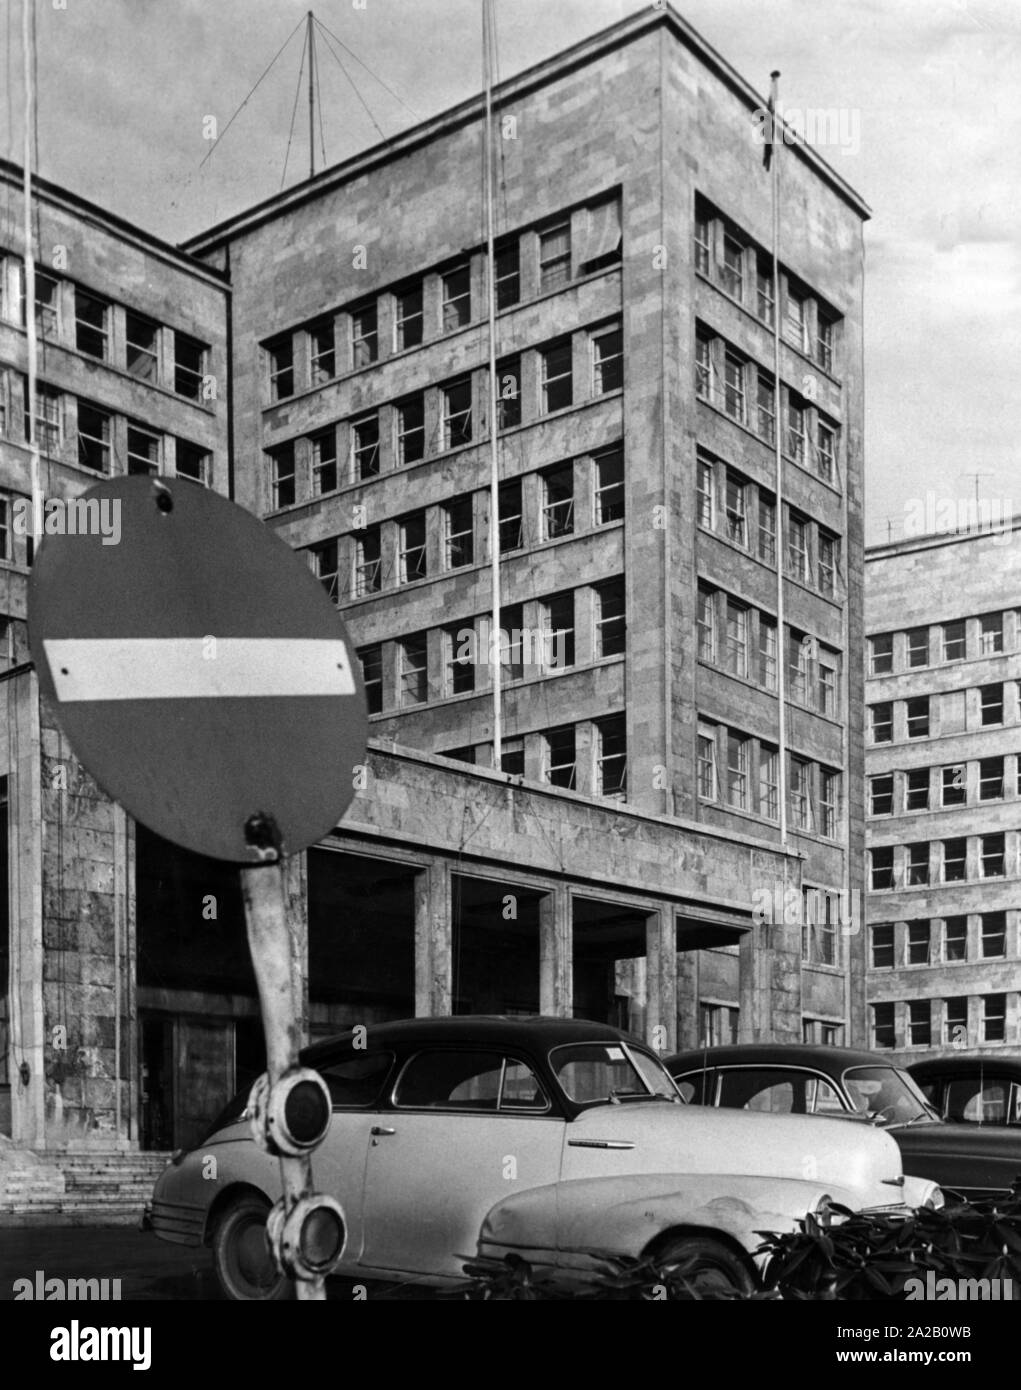 The south facade and the main entrance of the IG Farben Building in Frankfurt am Main. After the war it was the seat of the Allied Headquarters. Stock Photo